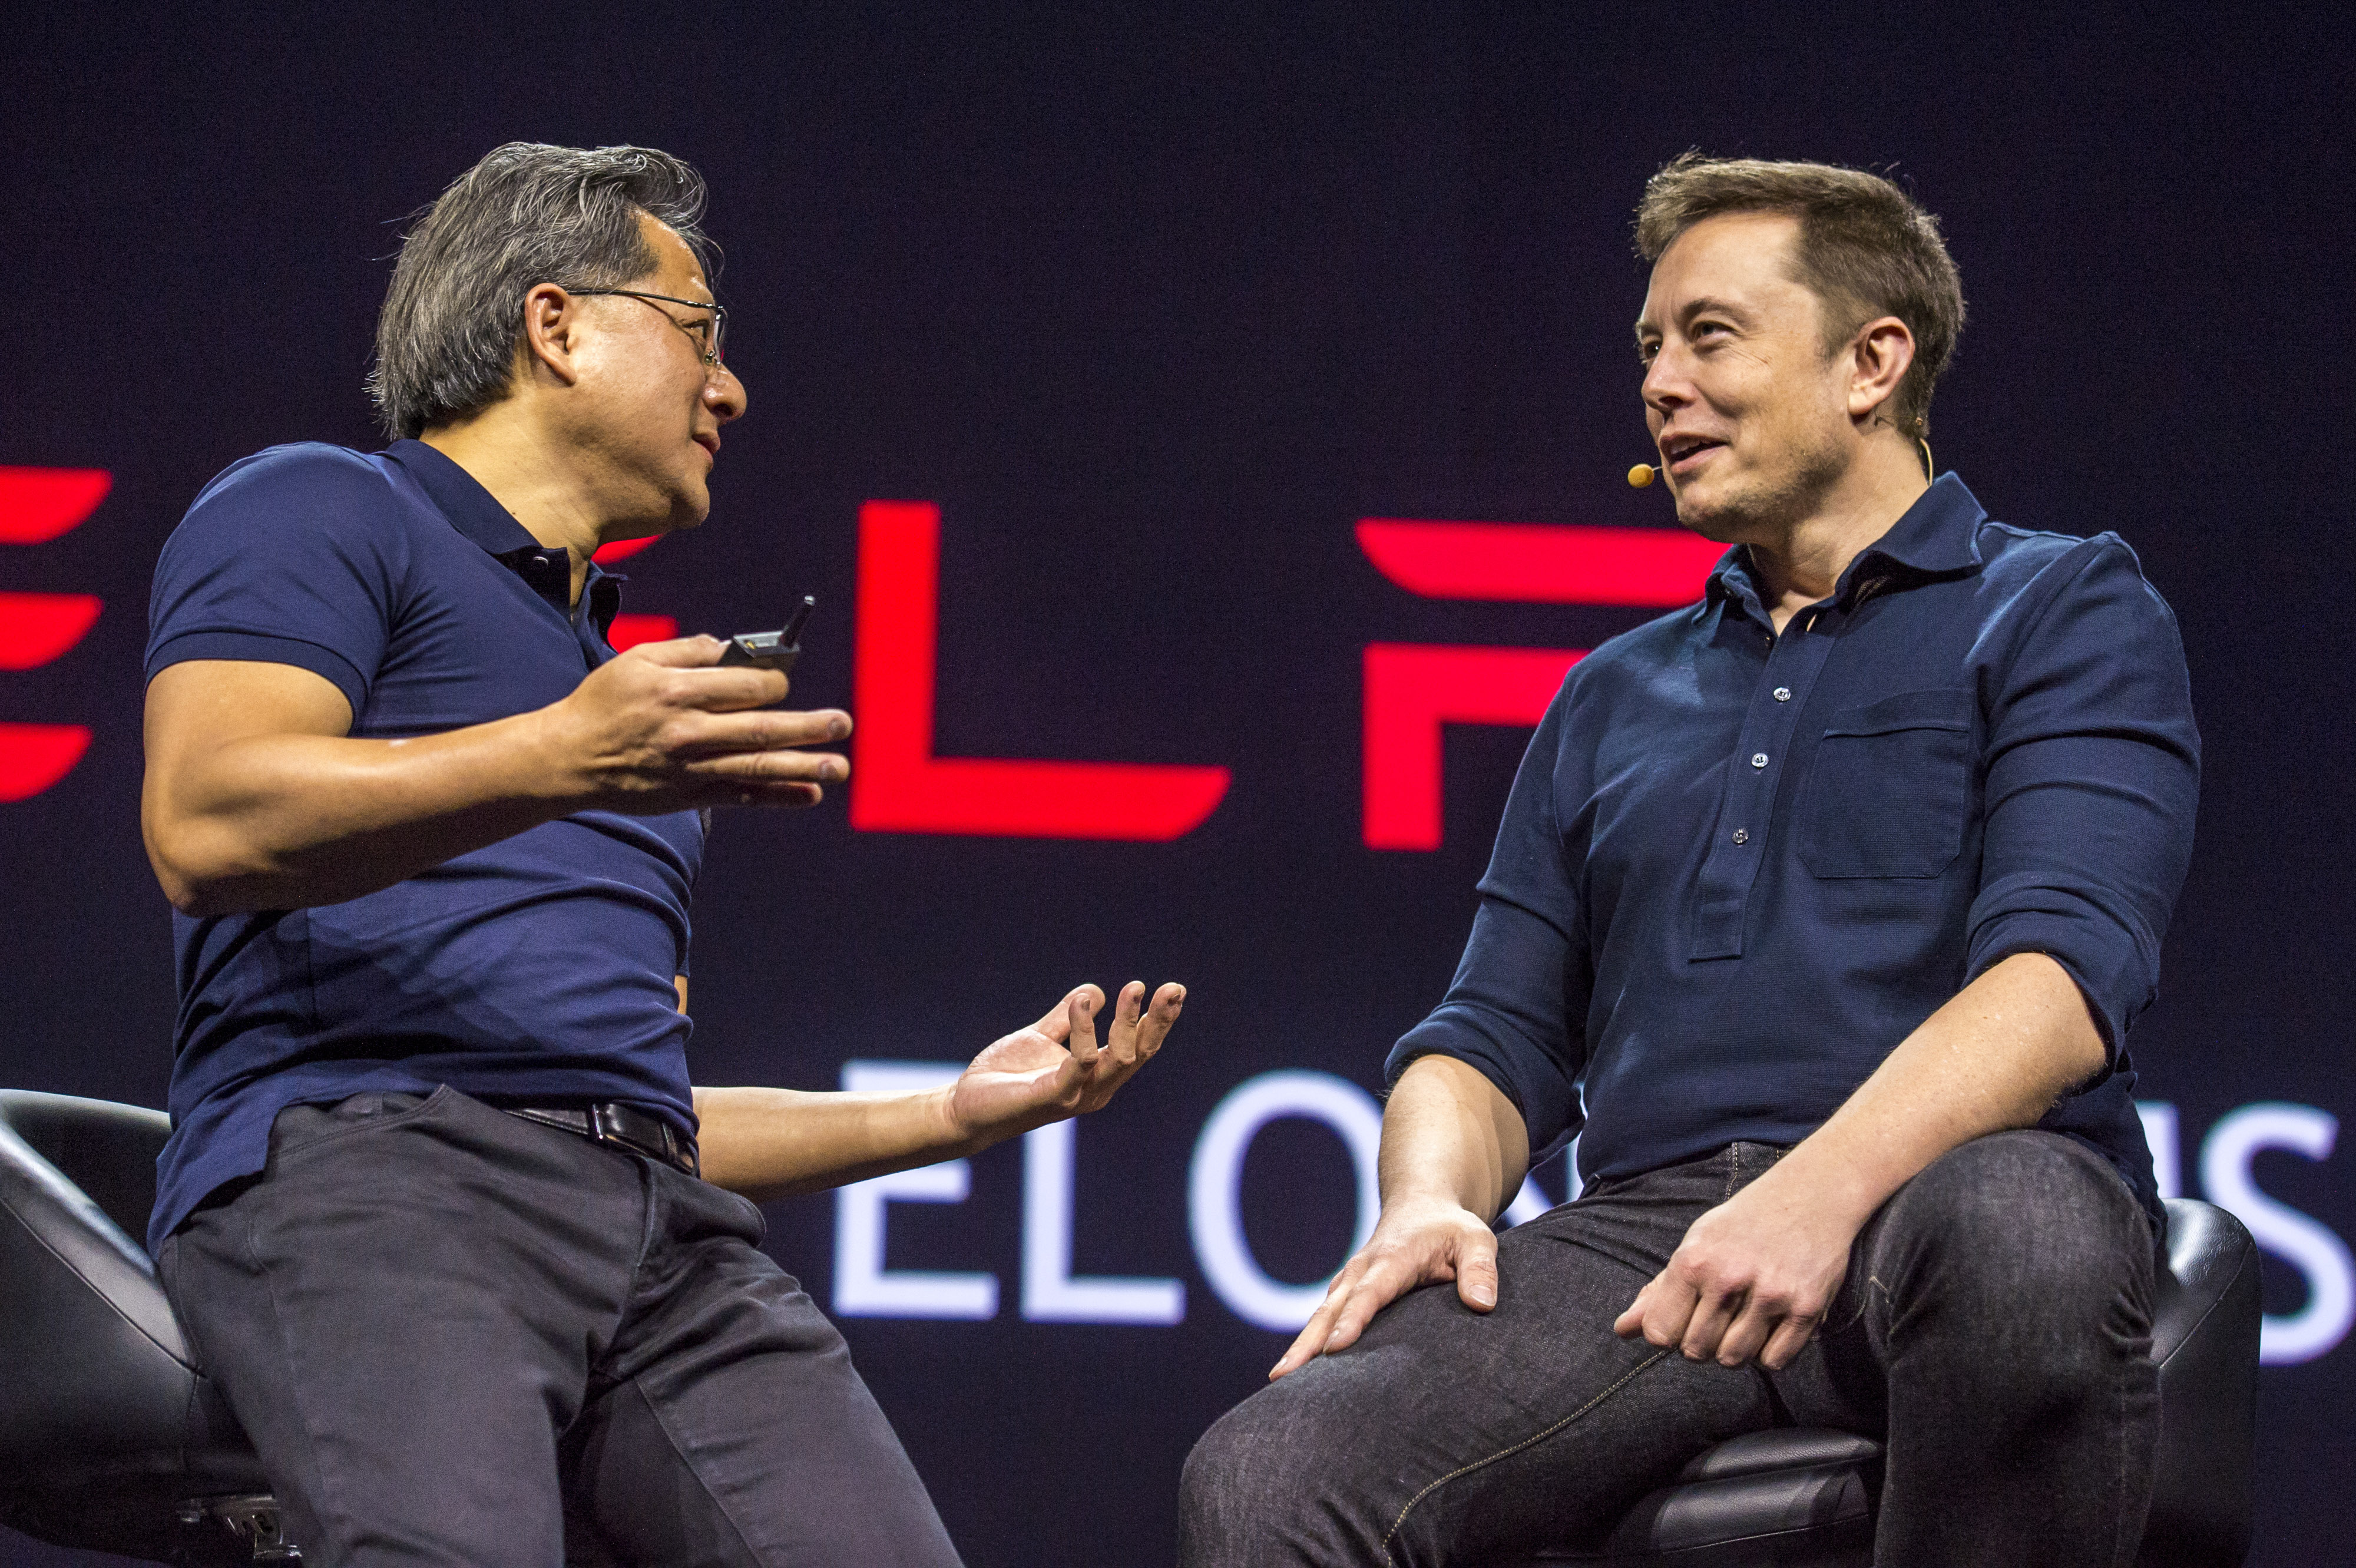 Tesla Motors Inc. CEO Elon Musk and Nvidia Corp. Chief Executive Officer Jen-Hsun Huang Speak At GPU Technology Conference